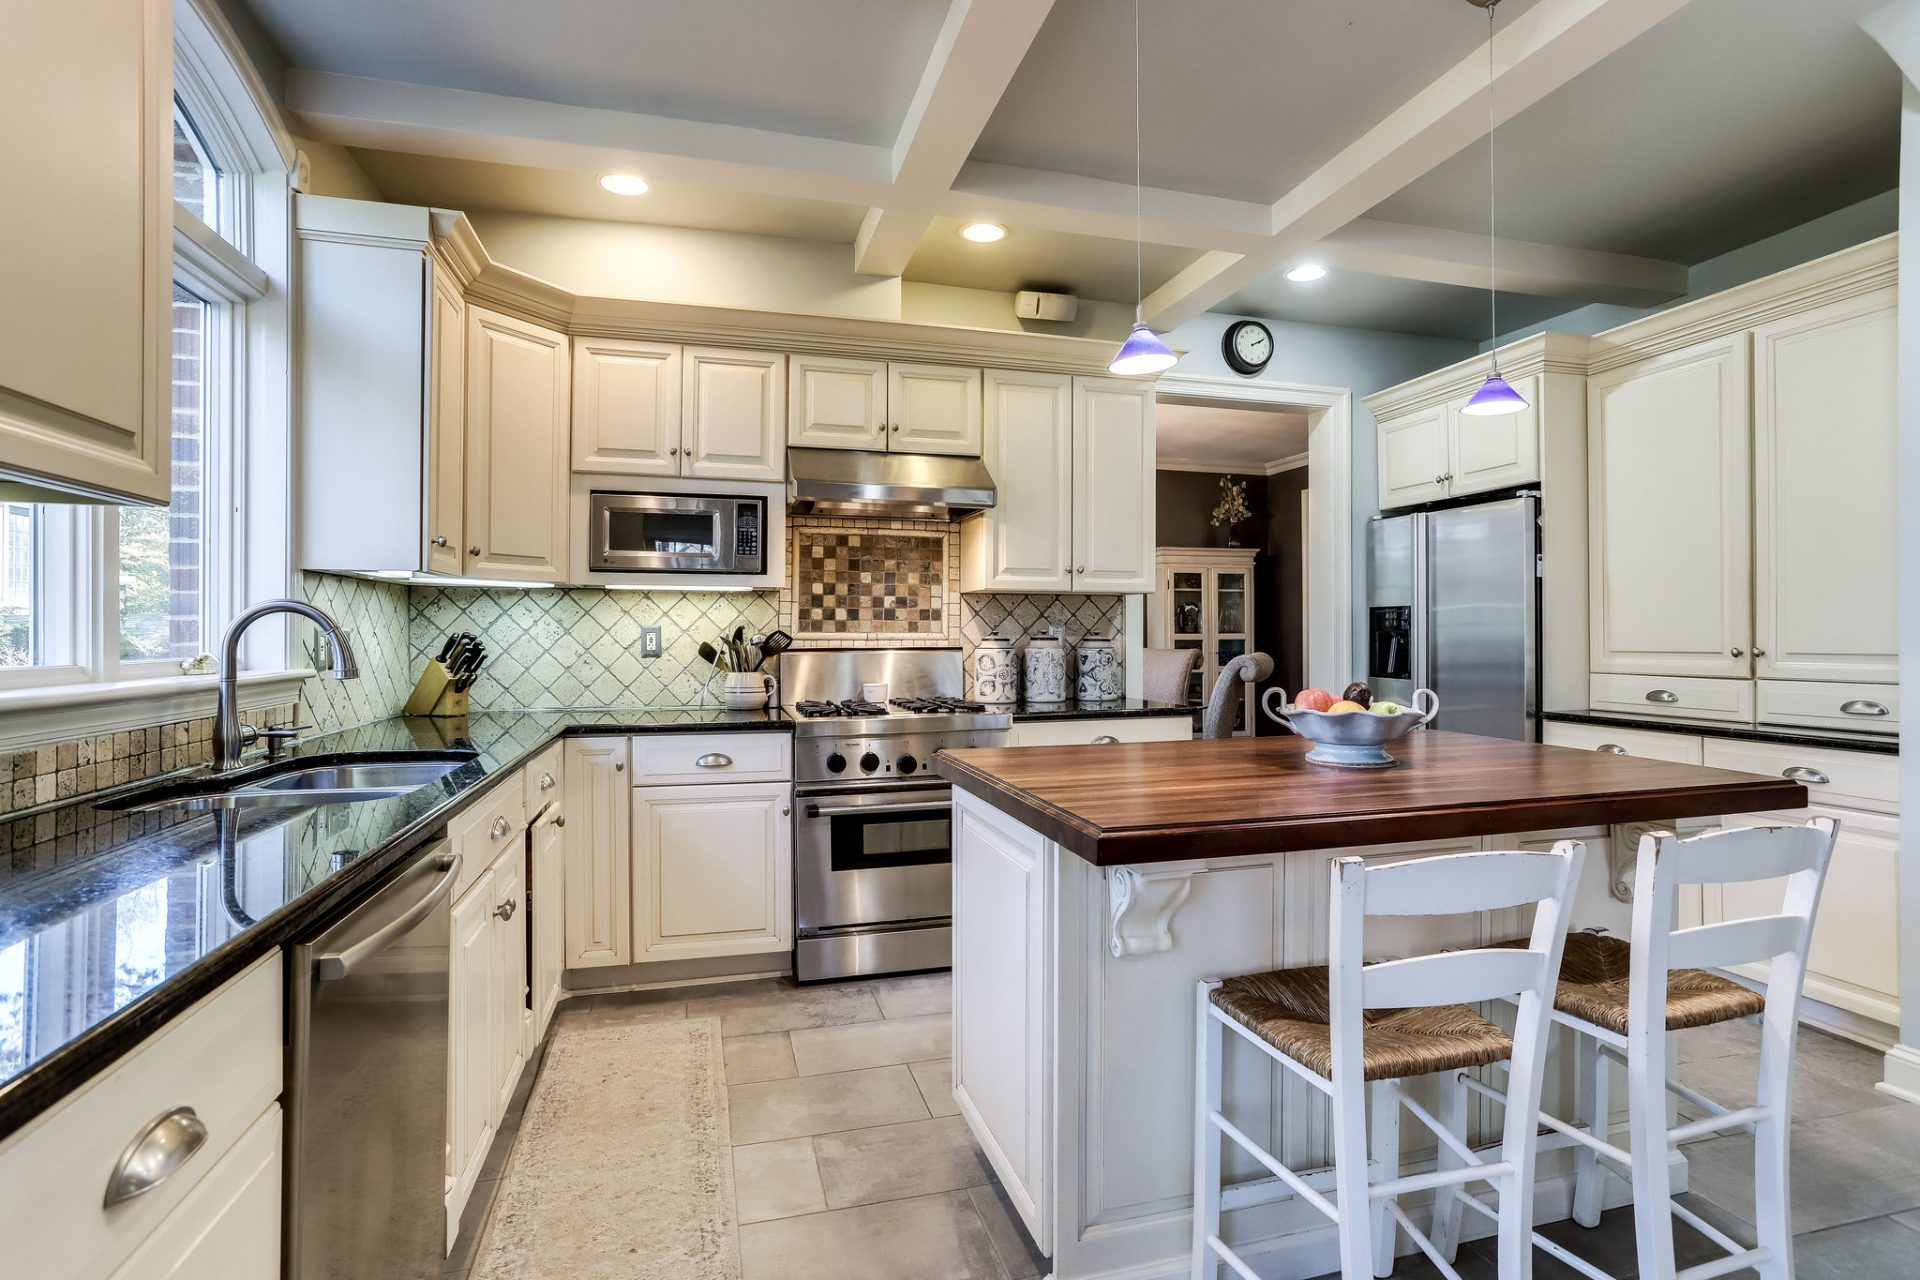 Lovely Kitchen with Island